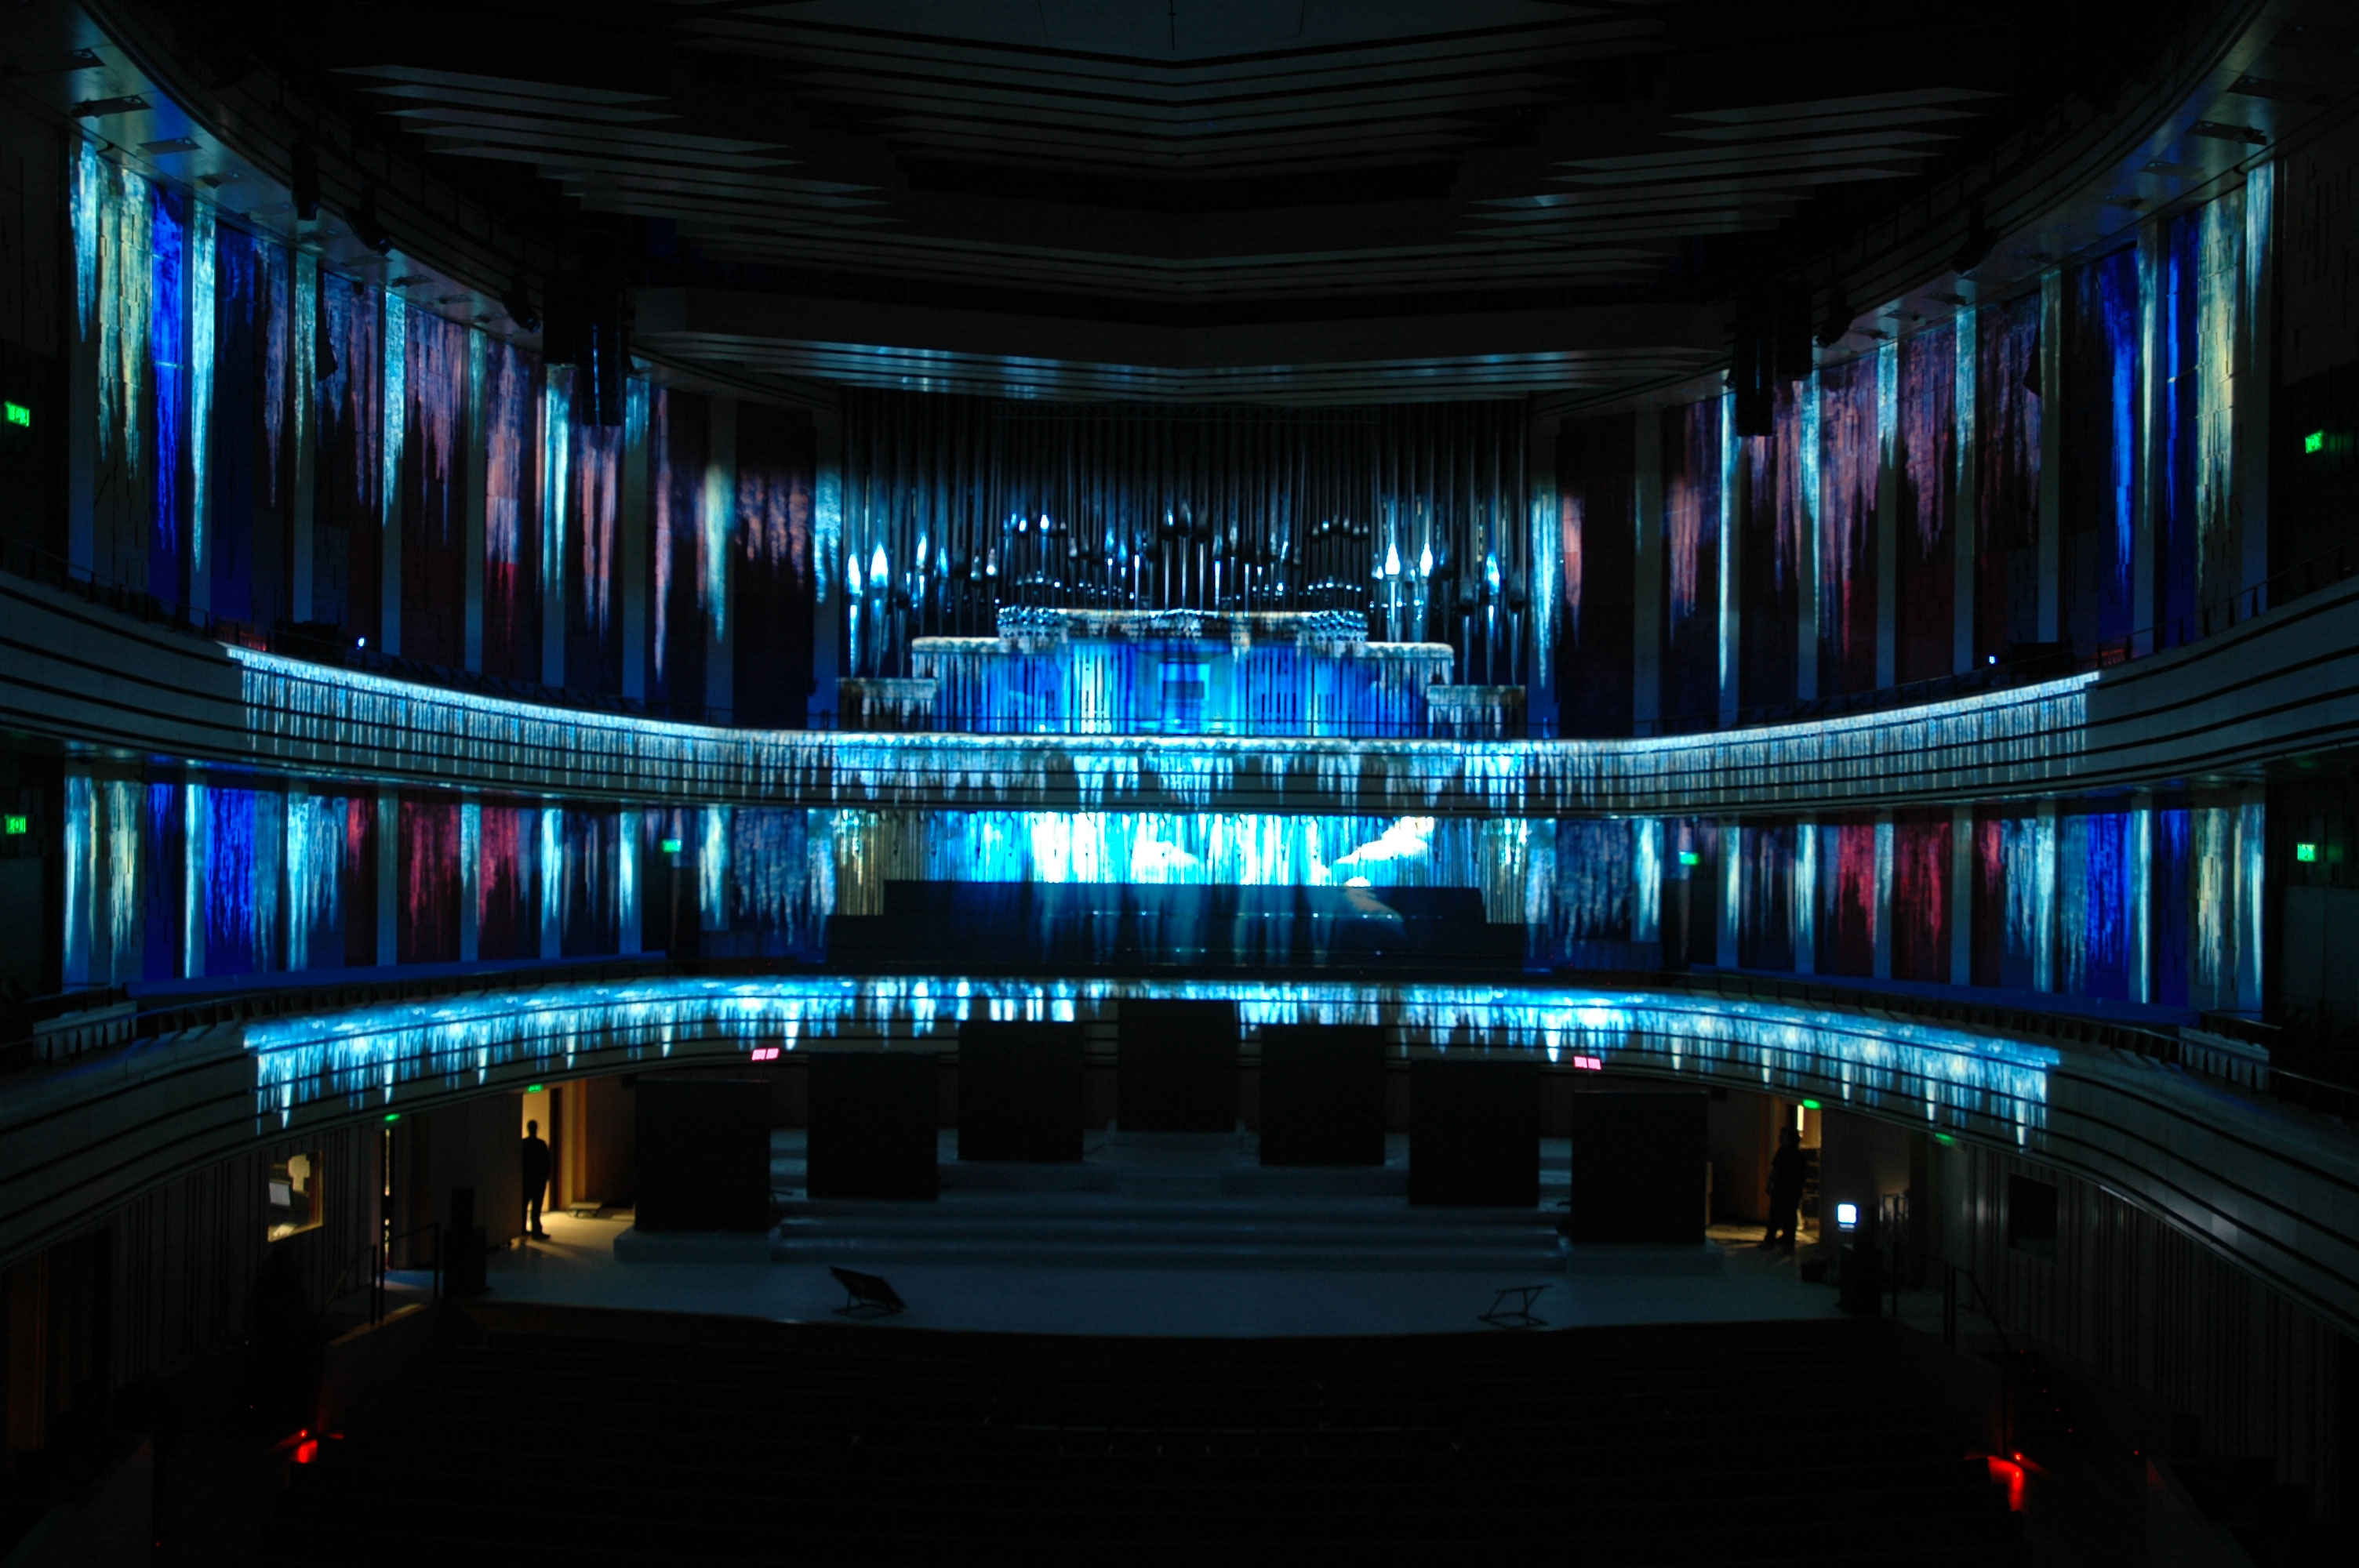 D Projection Mapping D Projection Mapping And D Projection - Projection mapping turns chapel into stunning work of contemporary art